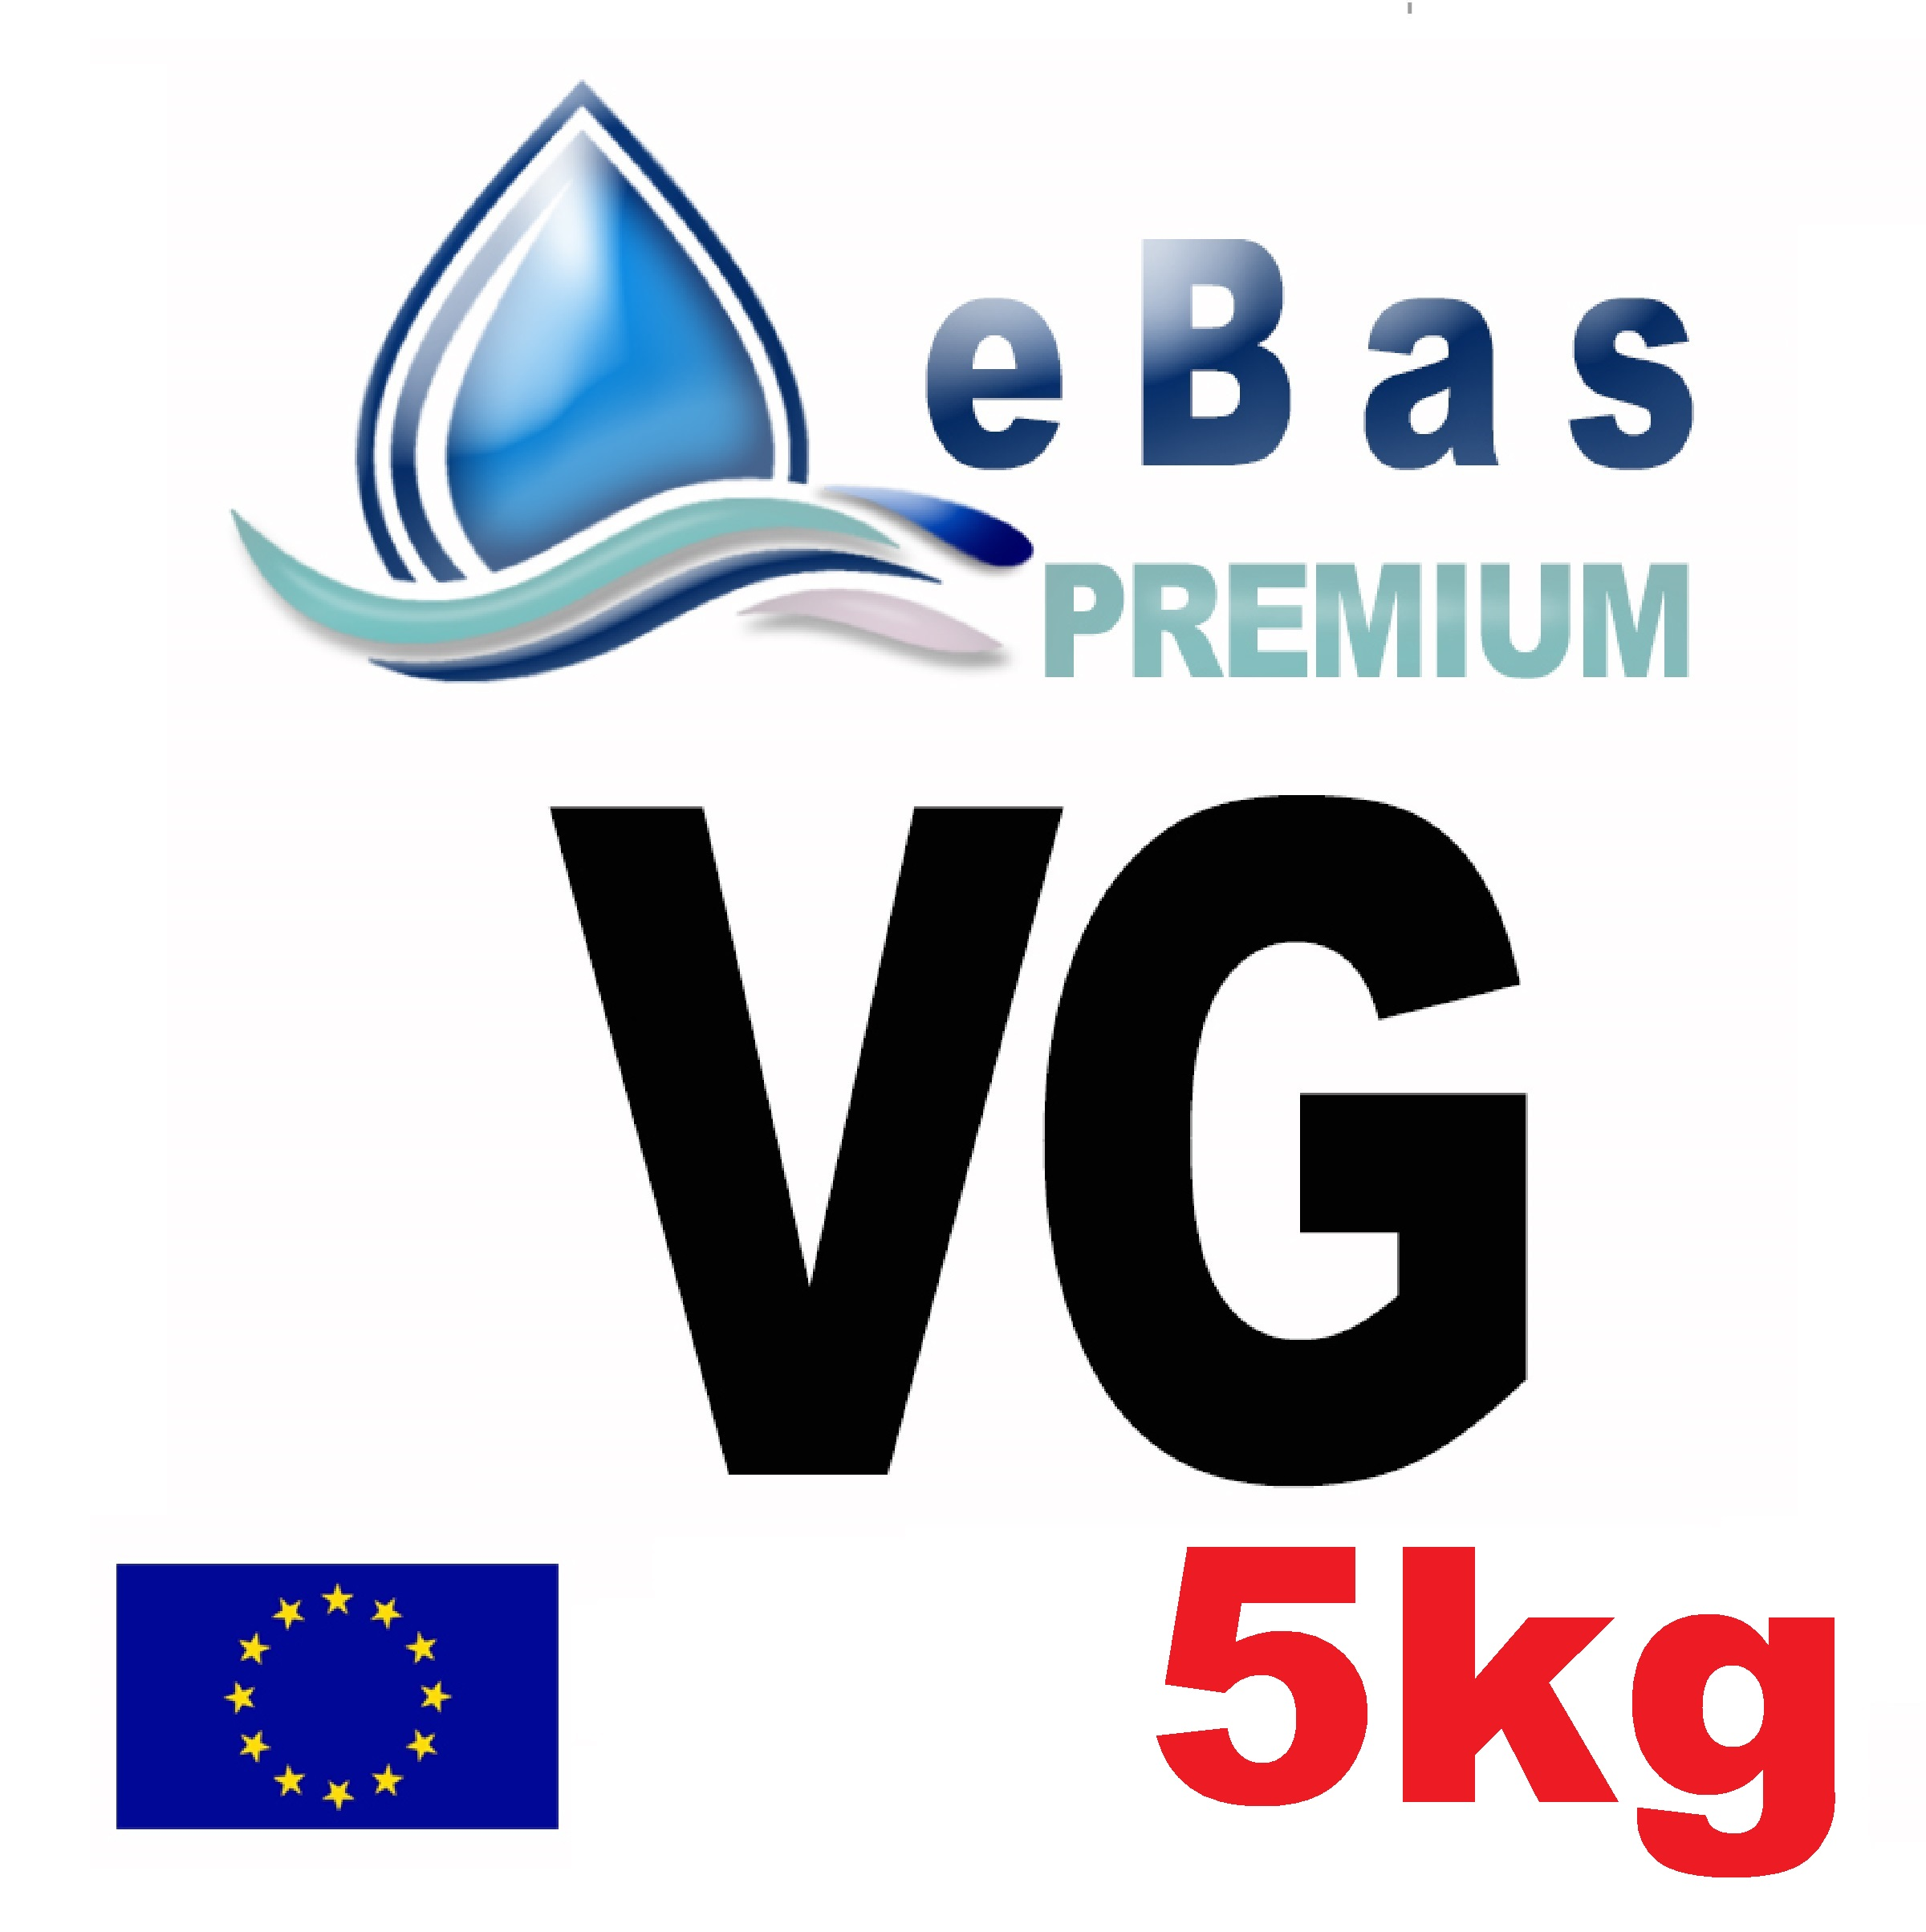 eBas Premium (VG) 5kg Vegetable Glycerine